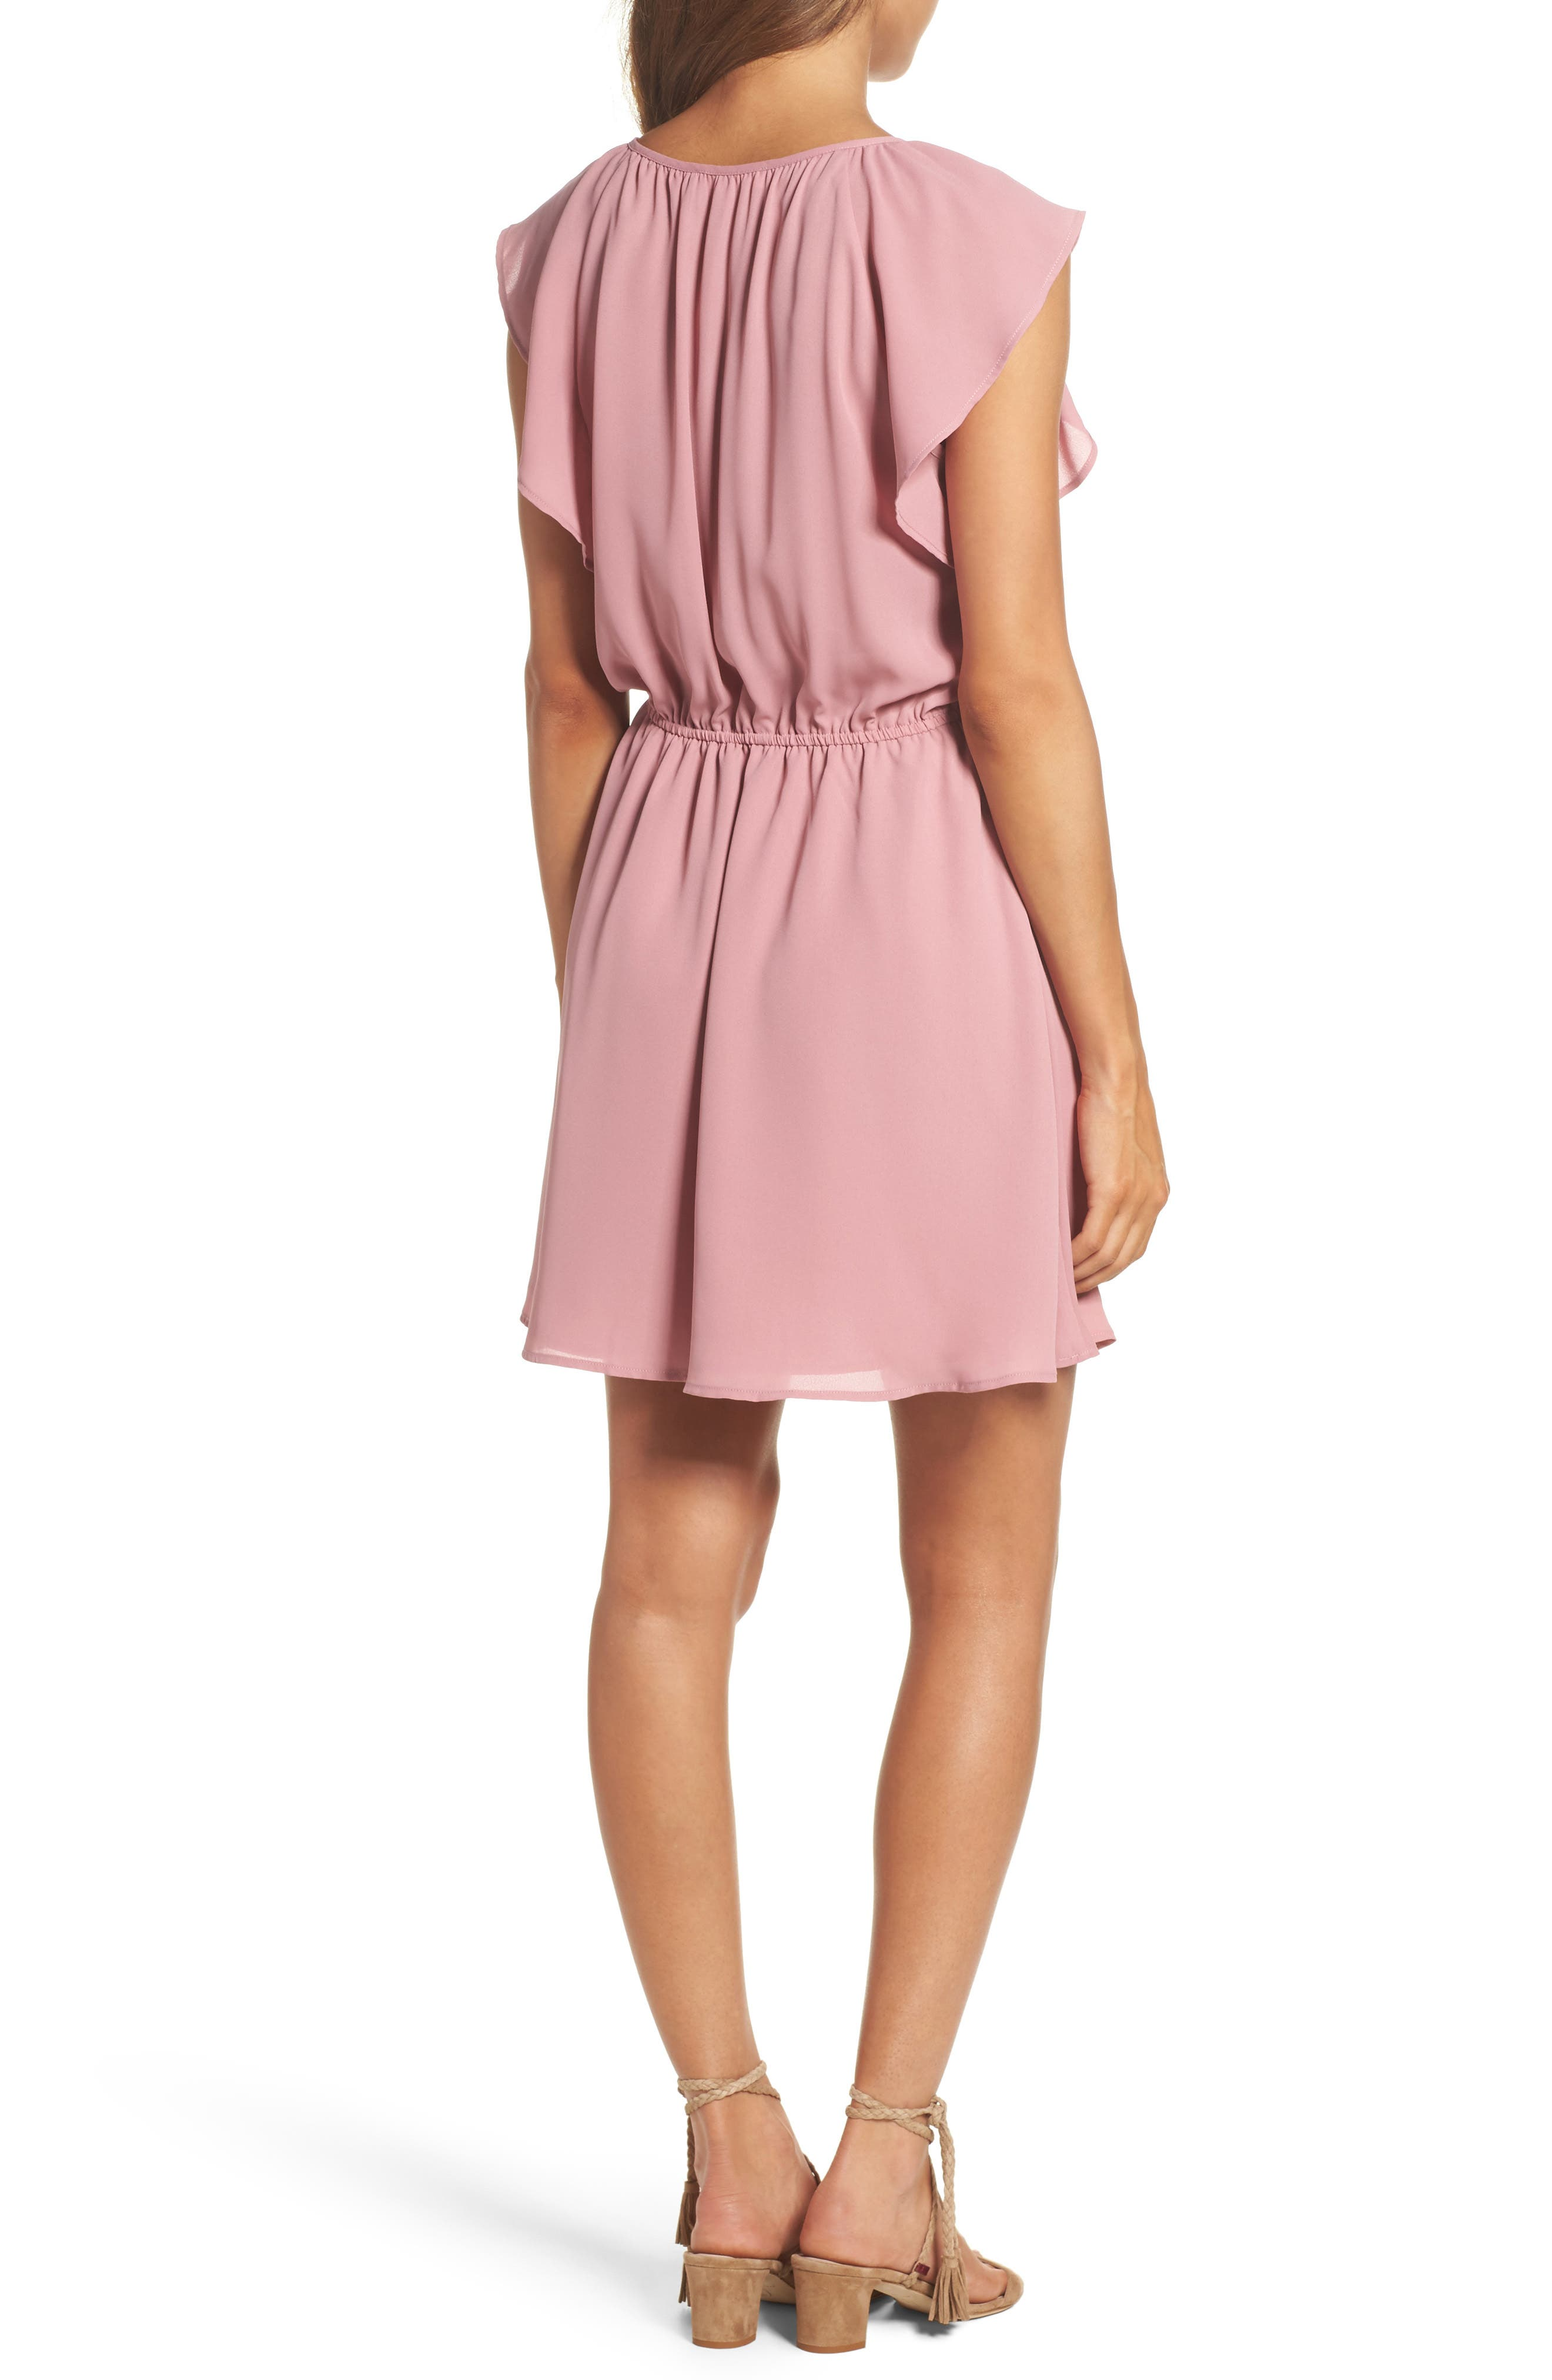 Adrienn Fit & Flare Dress,                             Alternate thumbnail 2, color,                             Dusty Rose